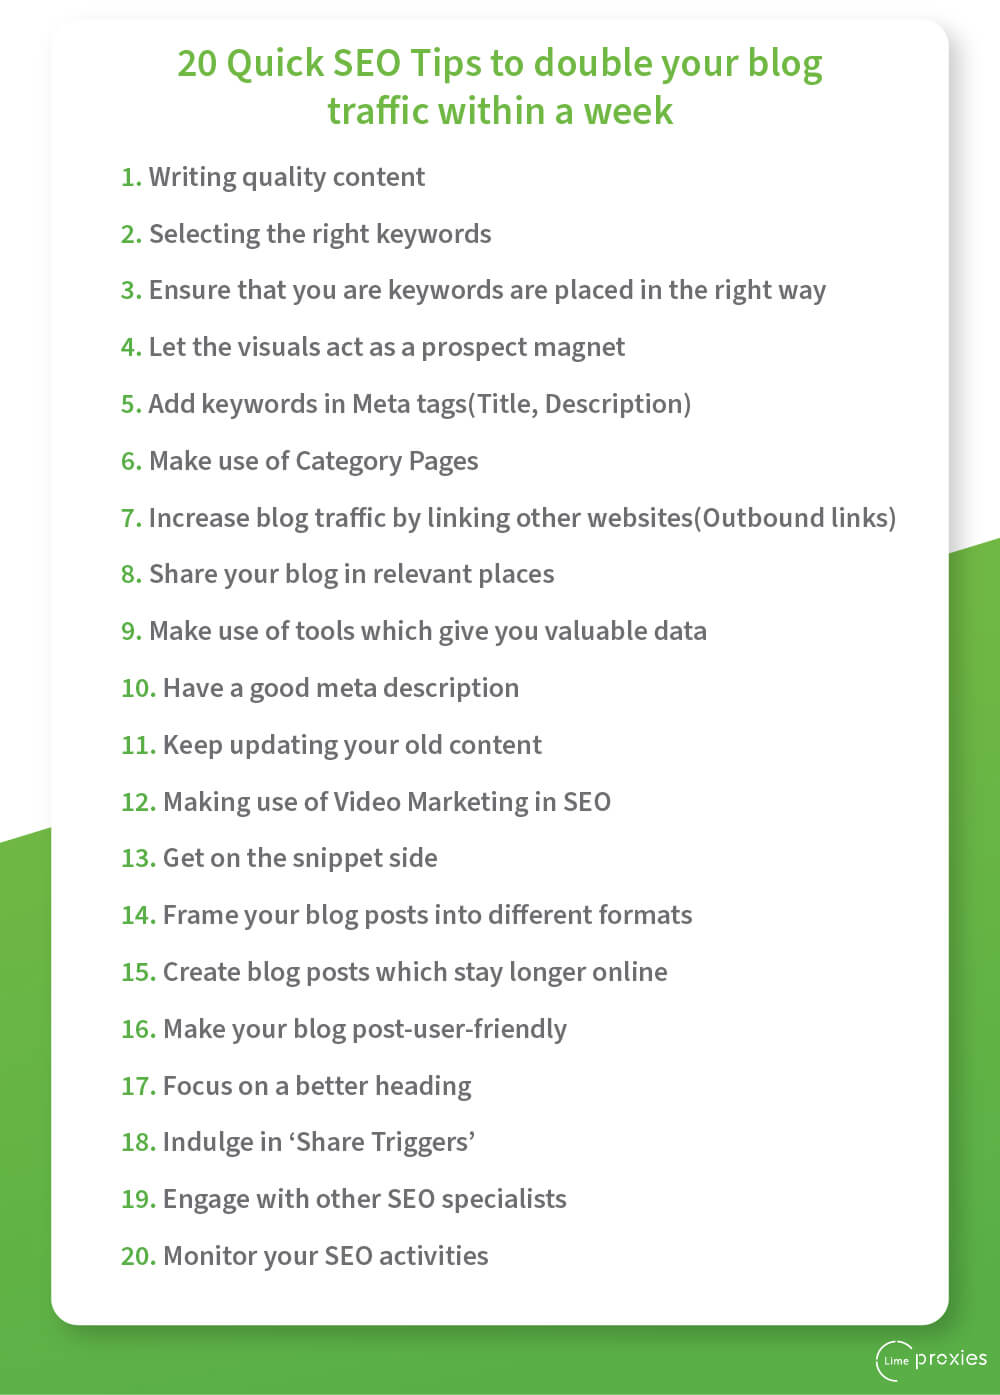 SEO Tips For Blog